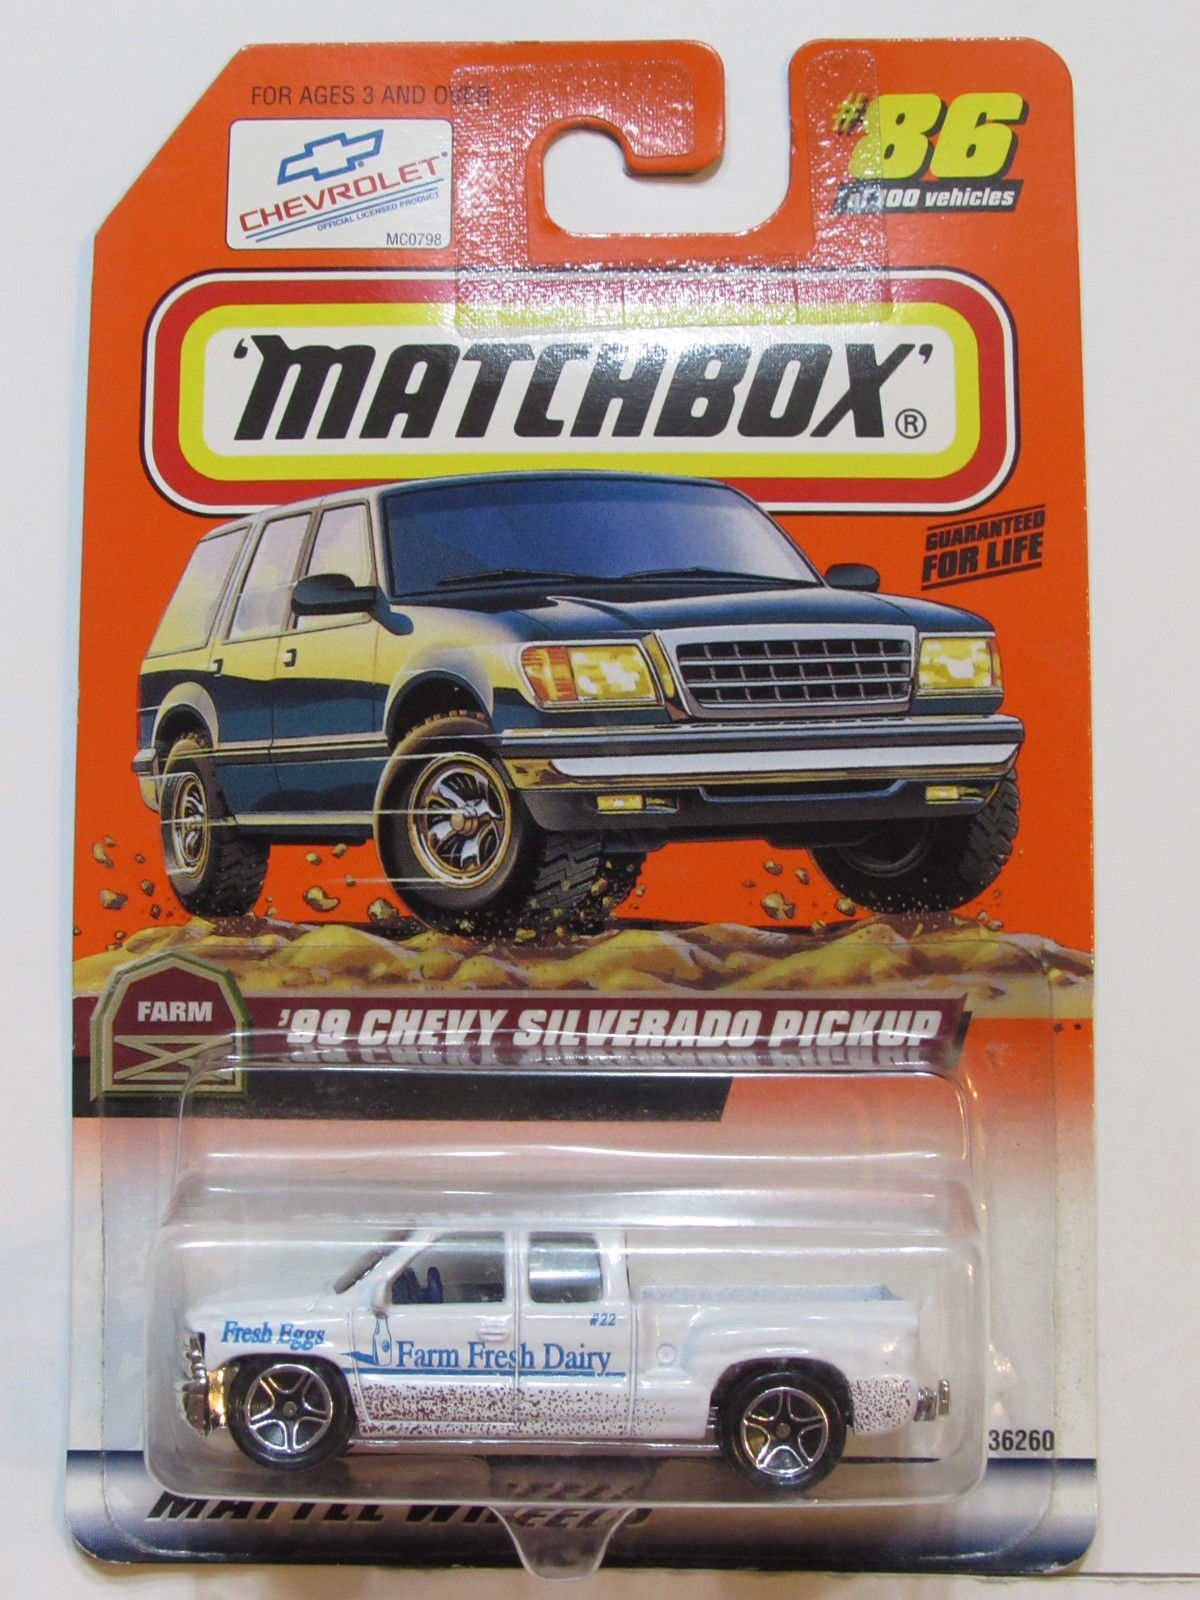 MATCHBOX 1998 #86 OF 100 '99 CHEVY SILVERADO PICKUP